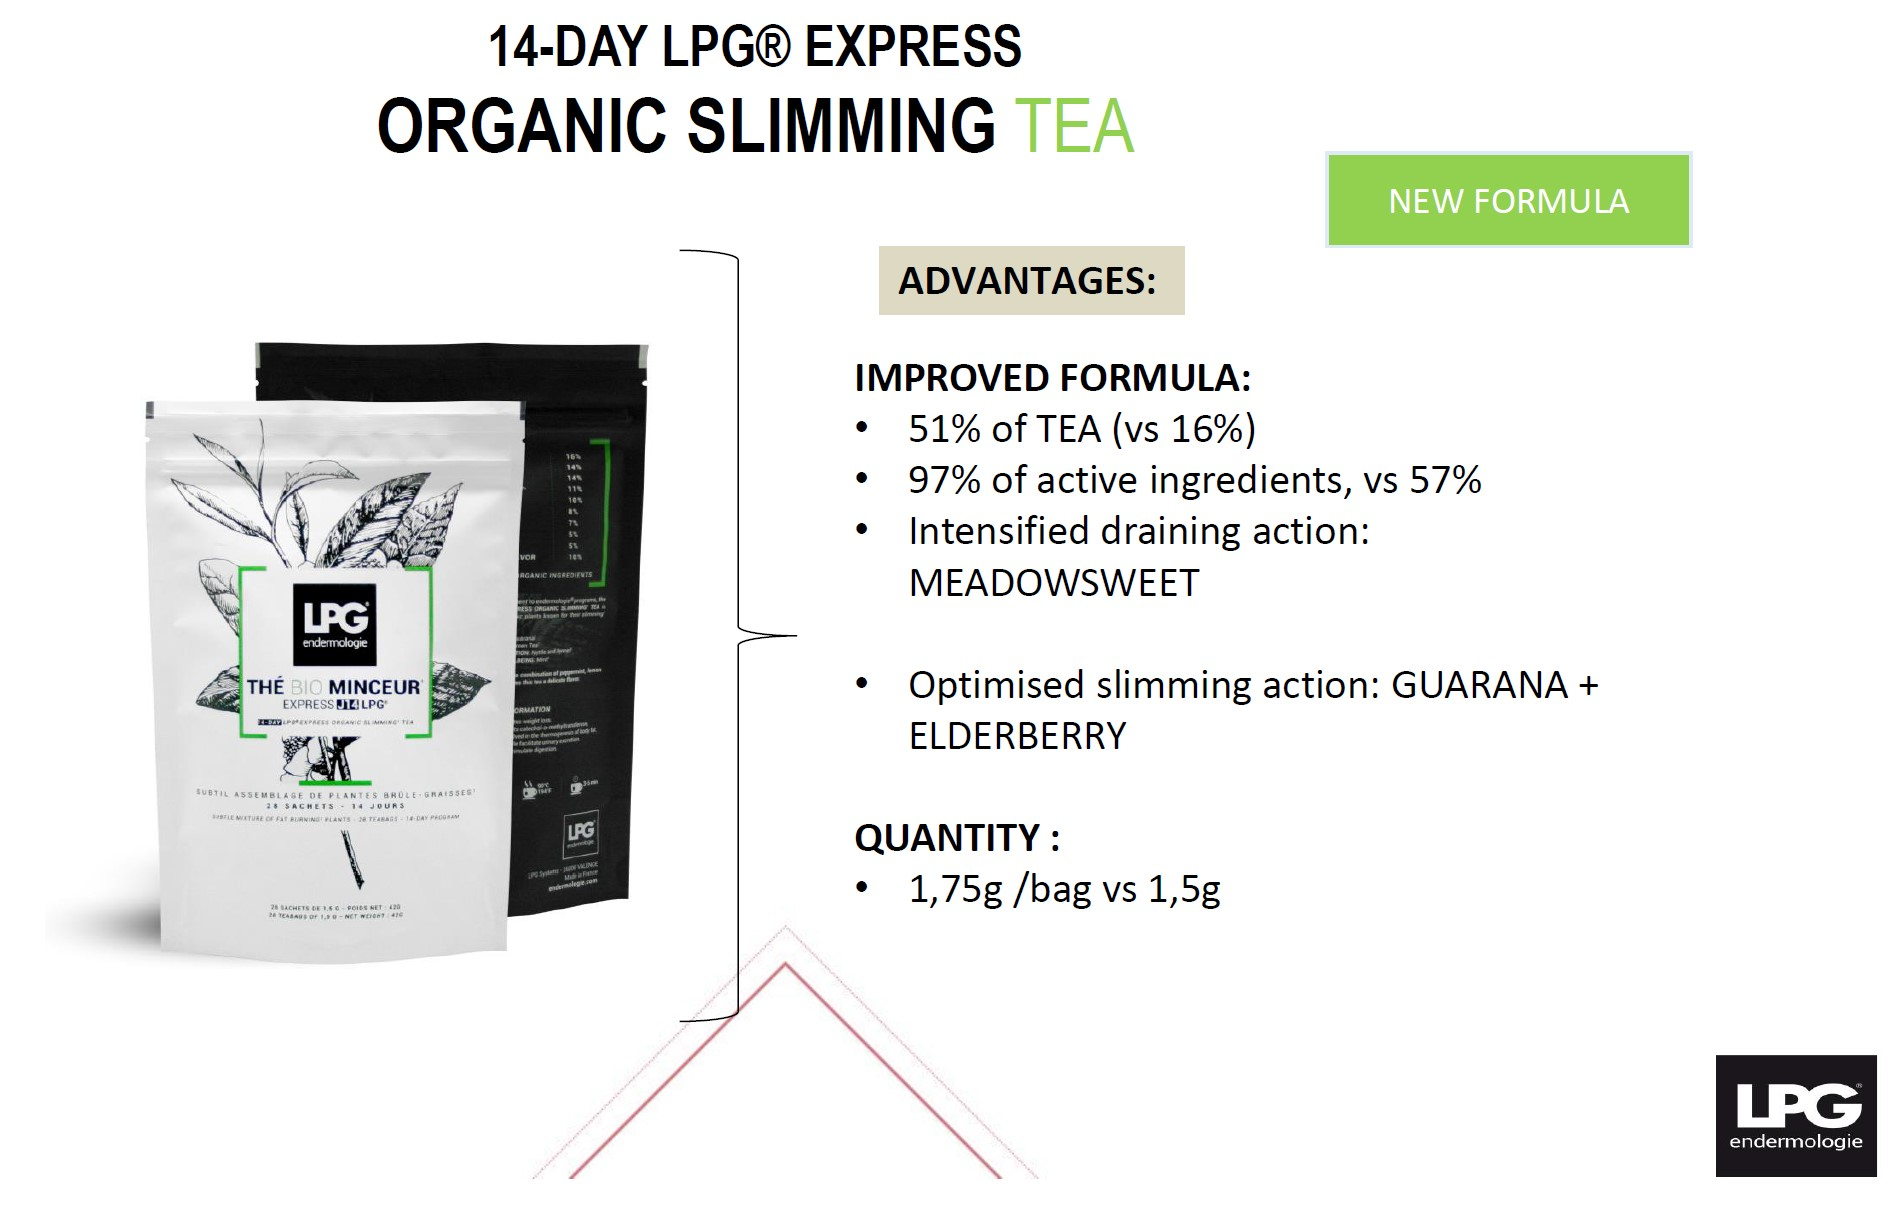 14-Day Express Organic Slimming Tea